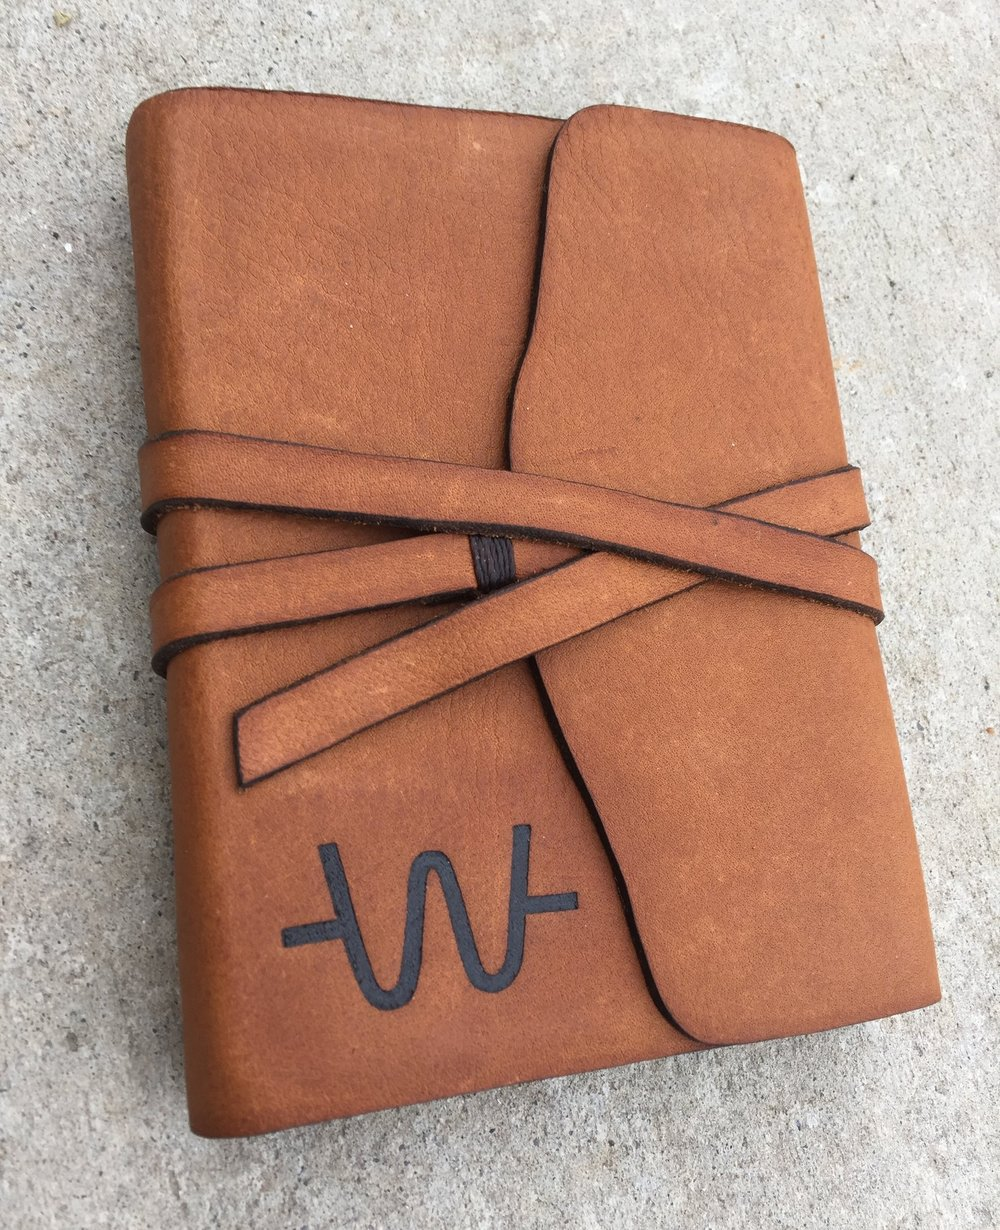 Circle M Brand - Heat Engraved handmade leather Journal with cattle brand.JPG